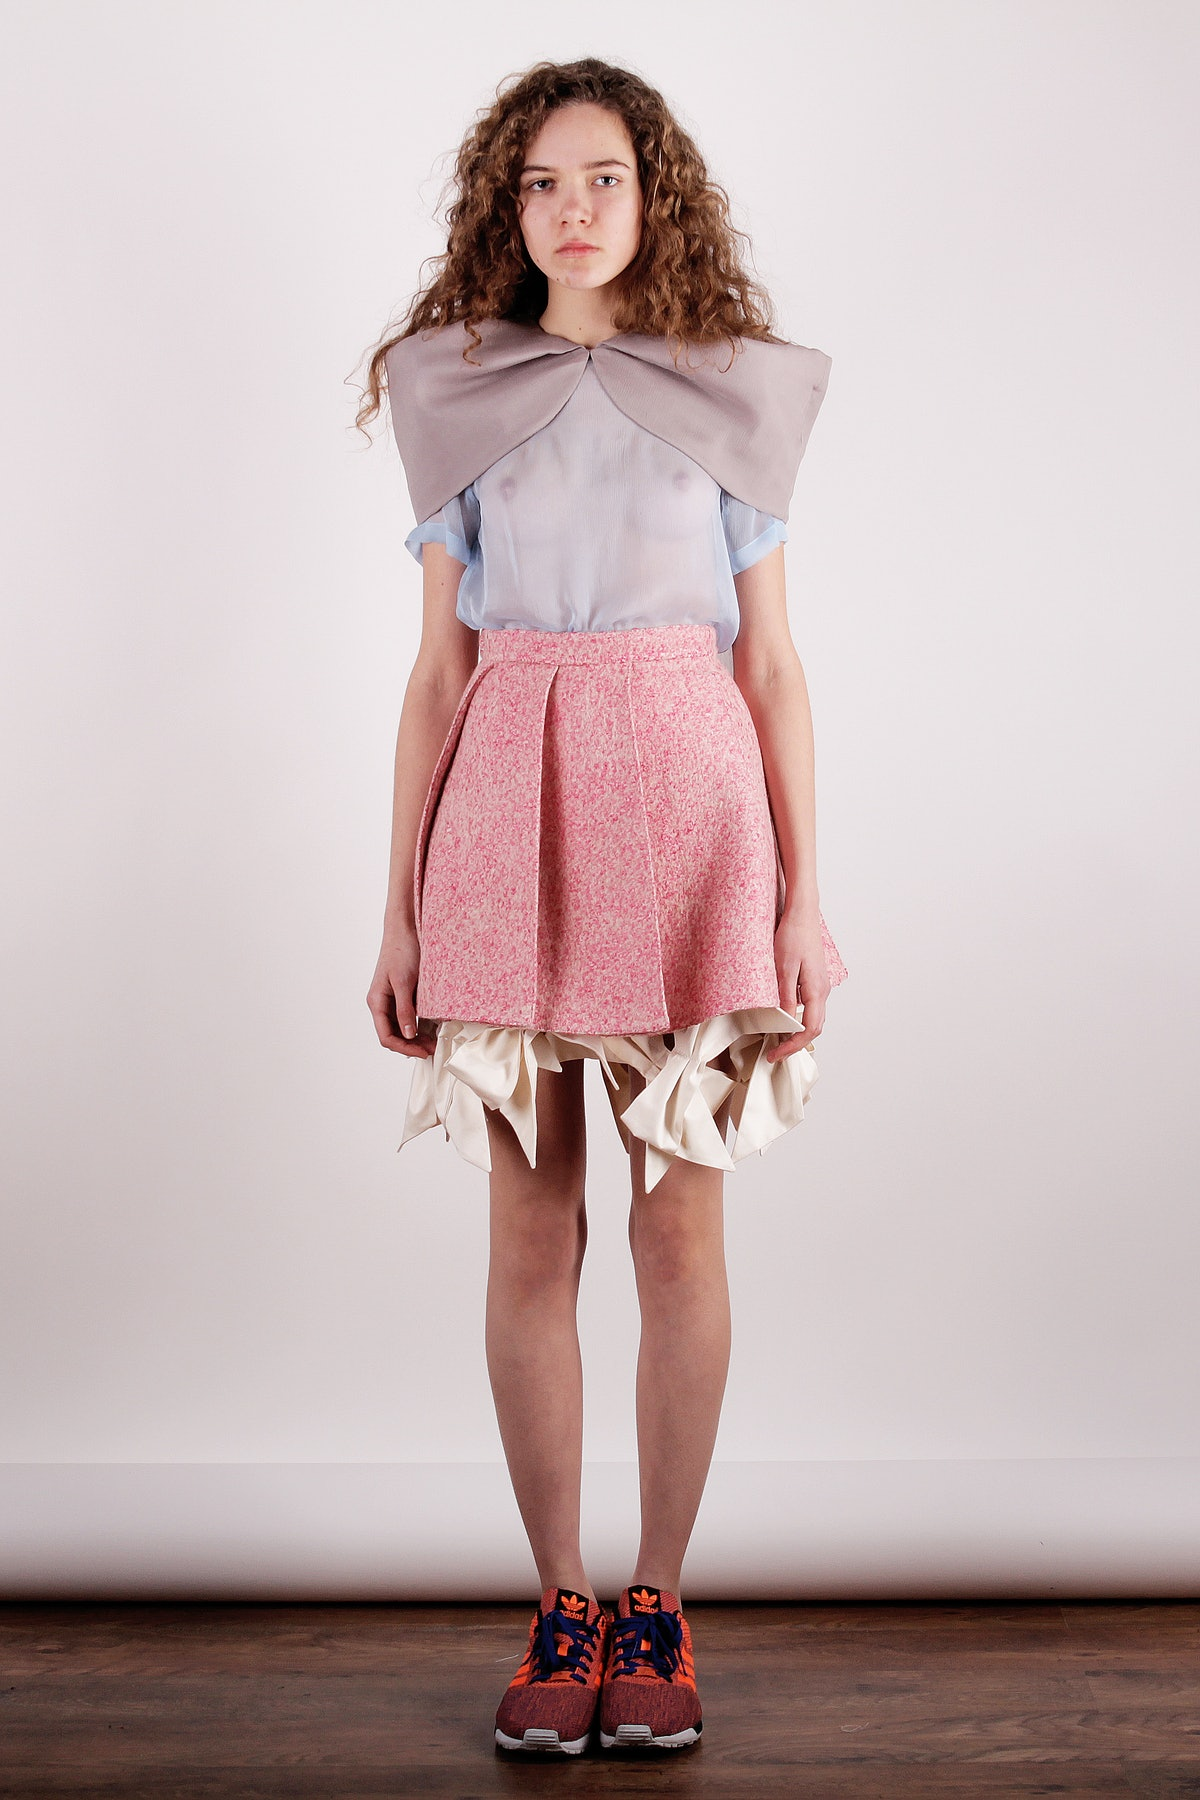 A look from Anna K's Spring 2015 collection